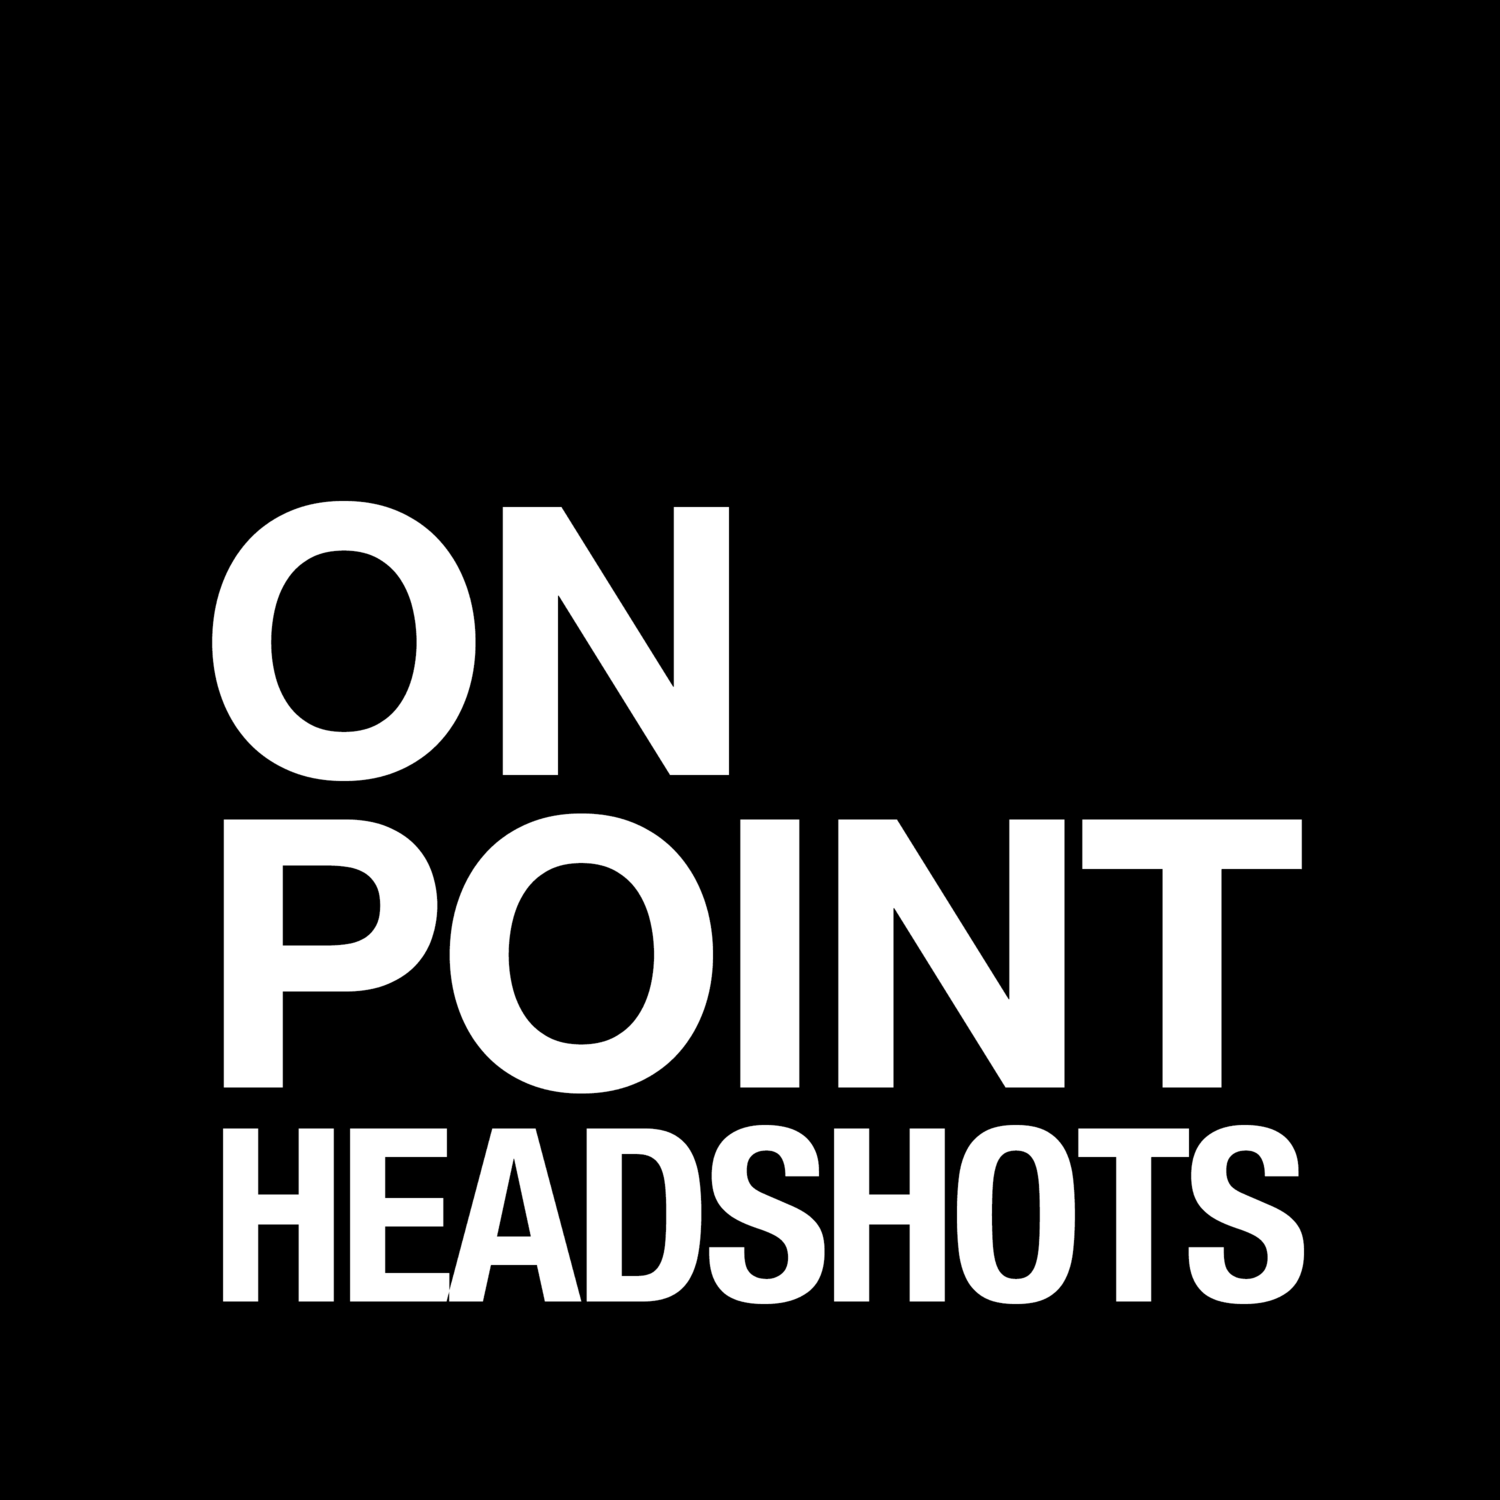 On Point Headshots Photography | Headshots Fort Lauderdale